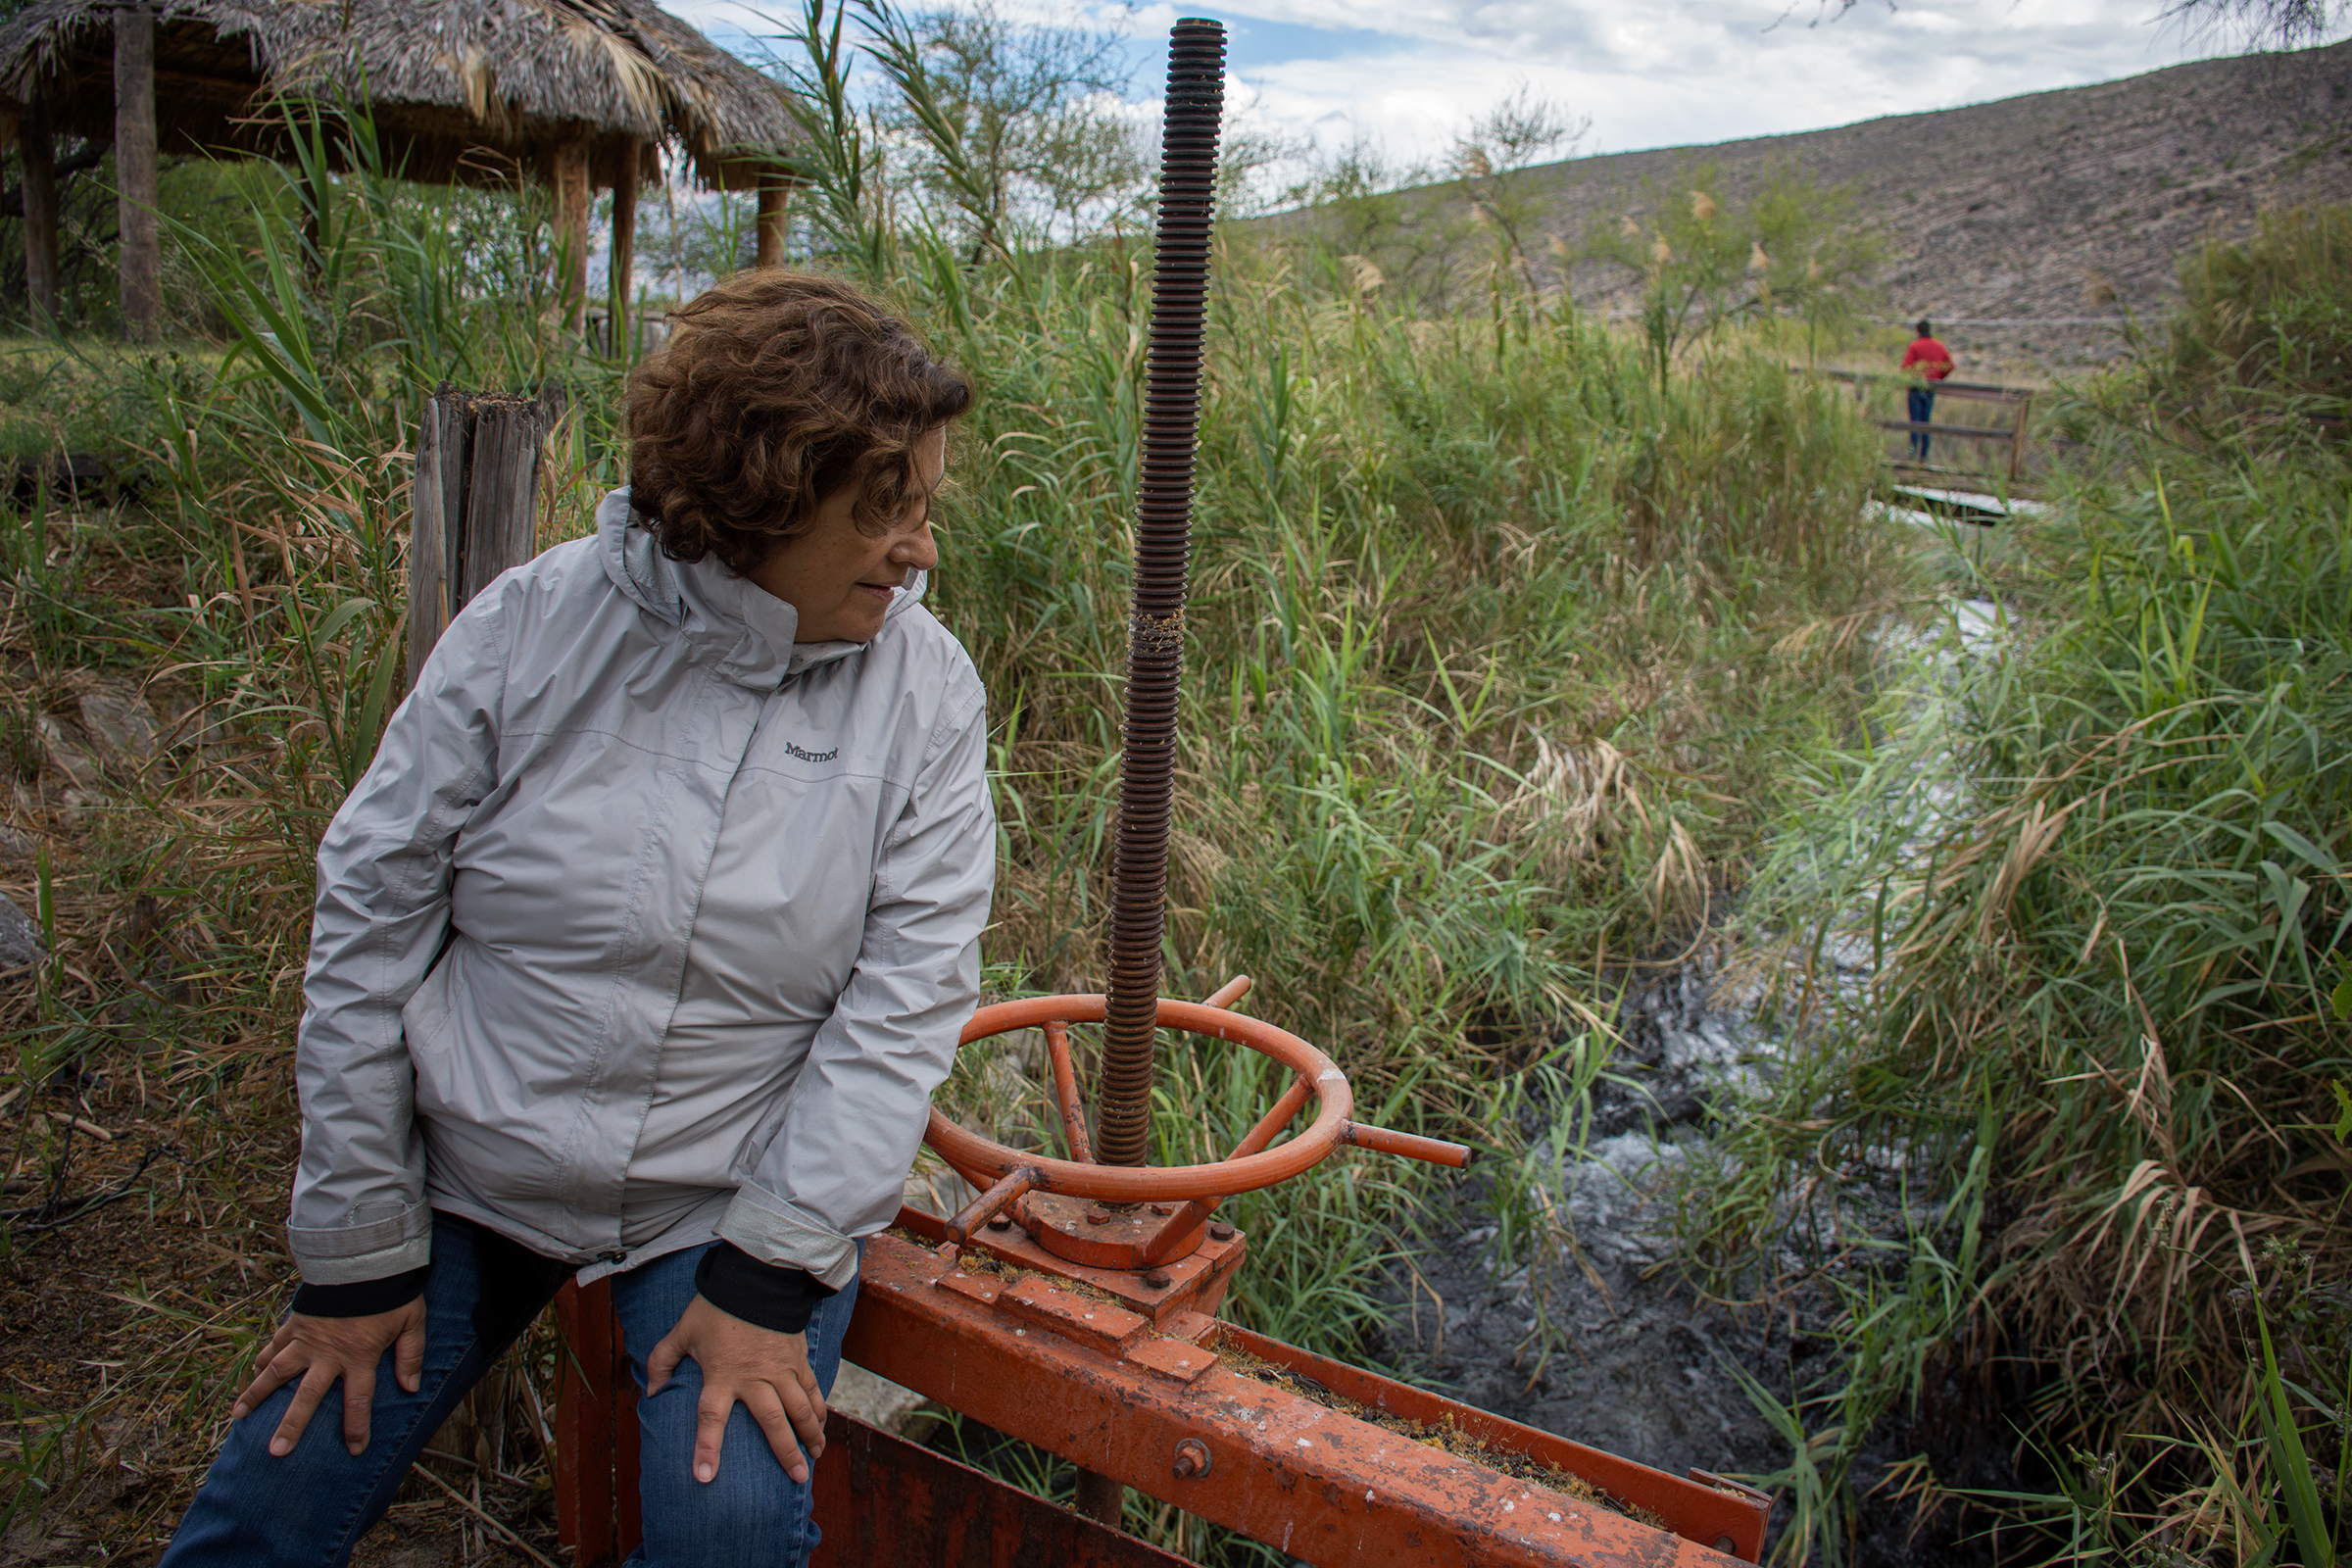 Microbiologist Valeria Souza leans against an open irrigation gate that is siphoning water from one of the remaining springs in the Cuatro Ciénegas basin.